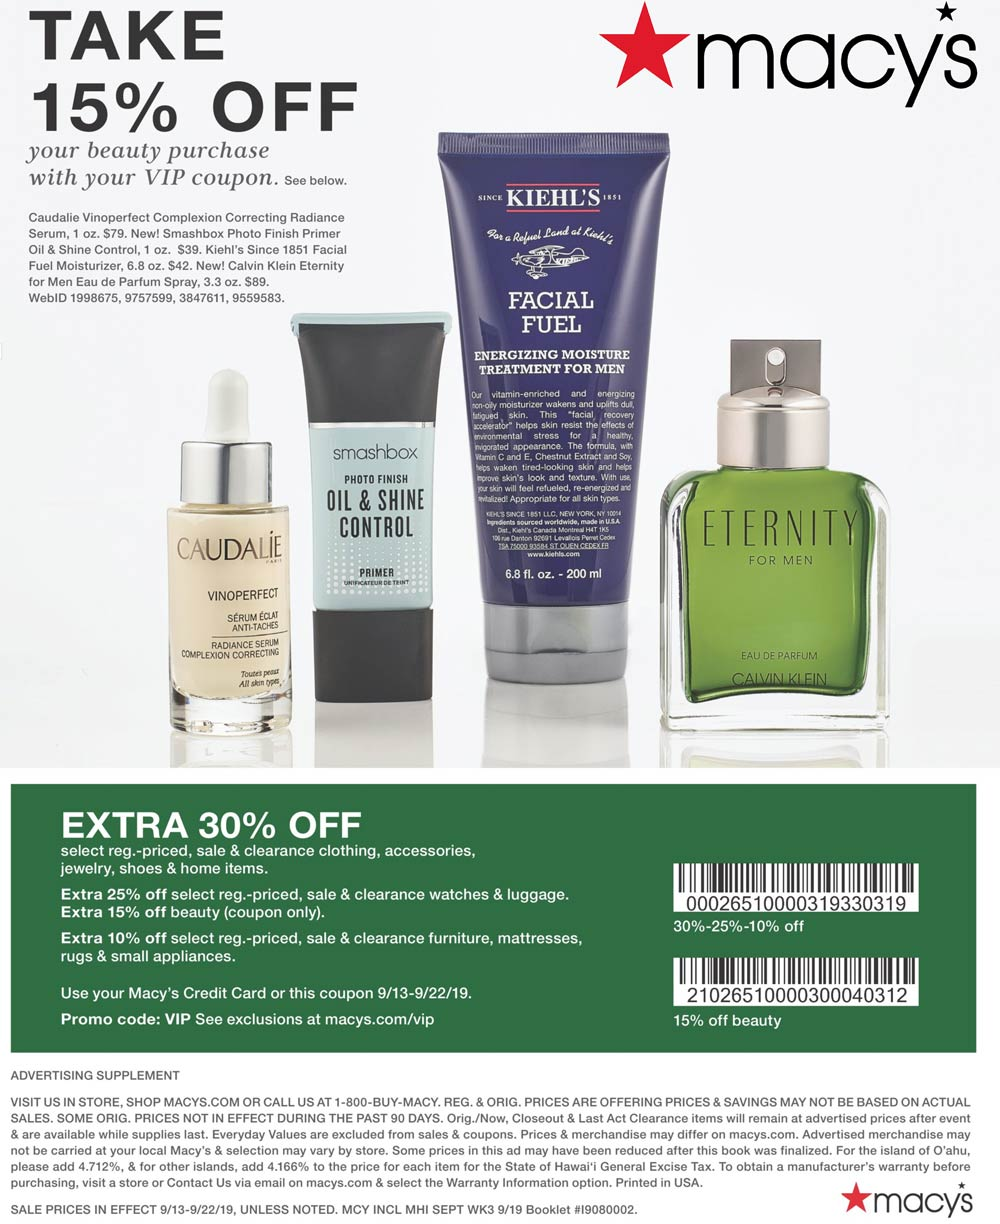 Macys Coupon November 2019 Extra 30% off at Macys, or online via promo code VIP